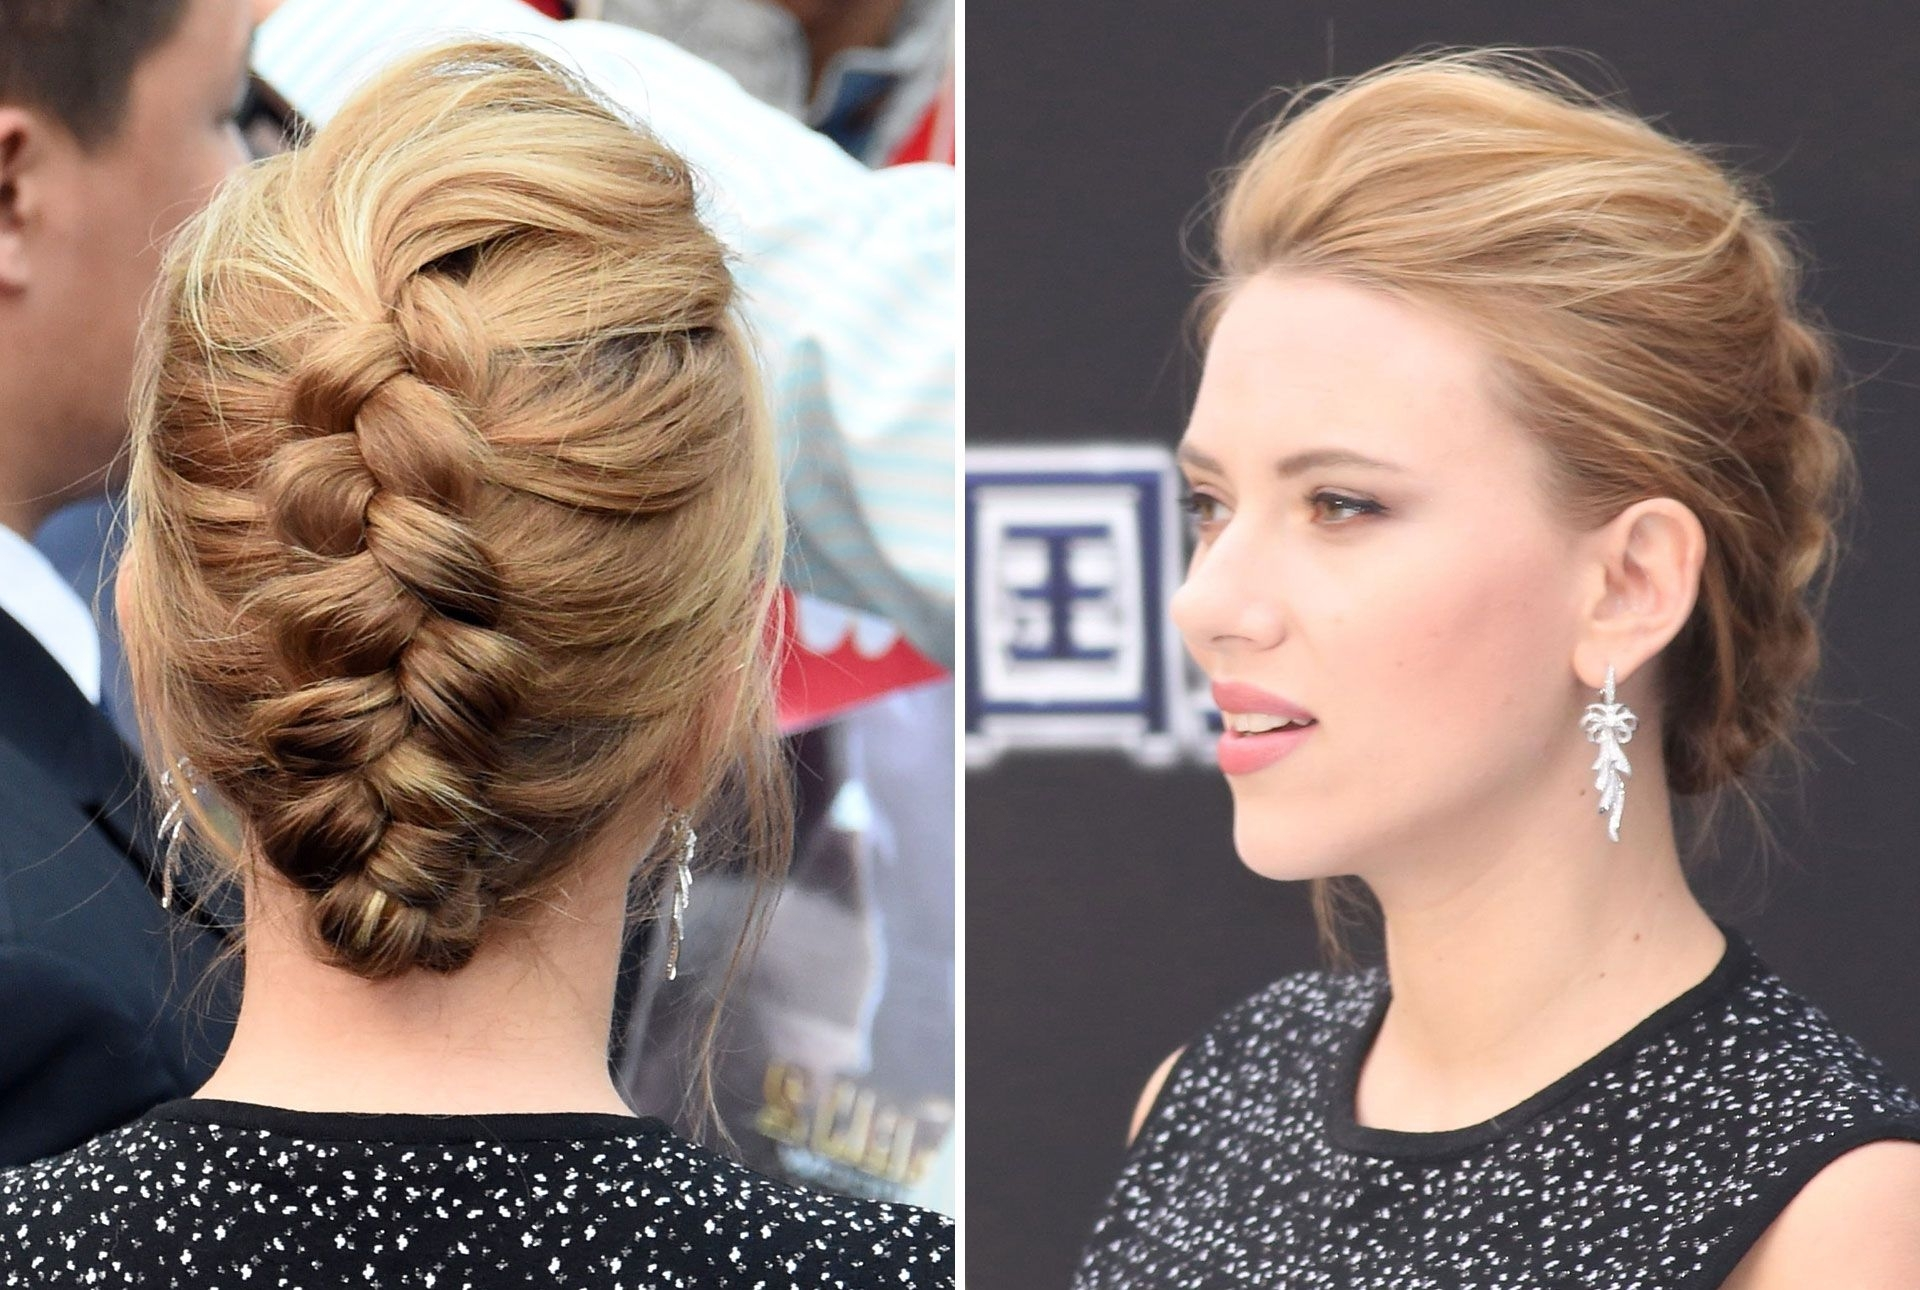 20 Easy Wedding Guest Hairstyles – Best Hair Ideas For Wedding Guests Within Updo Hairstyles For Black Tie Event (View 3 of 15)